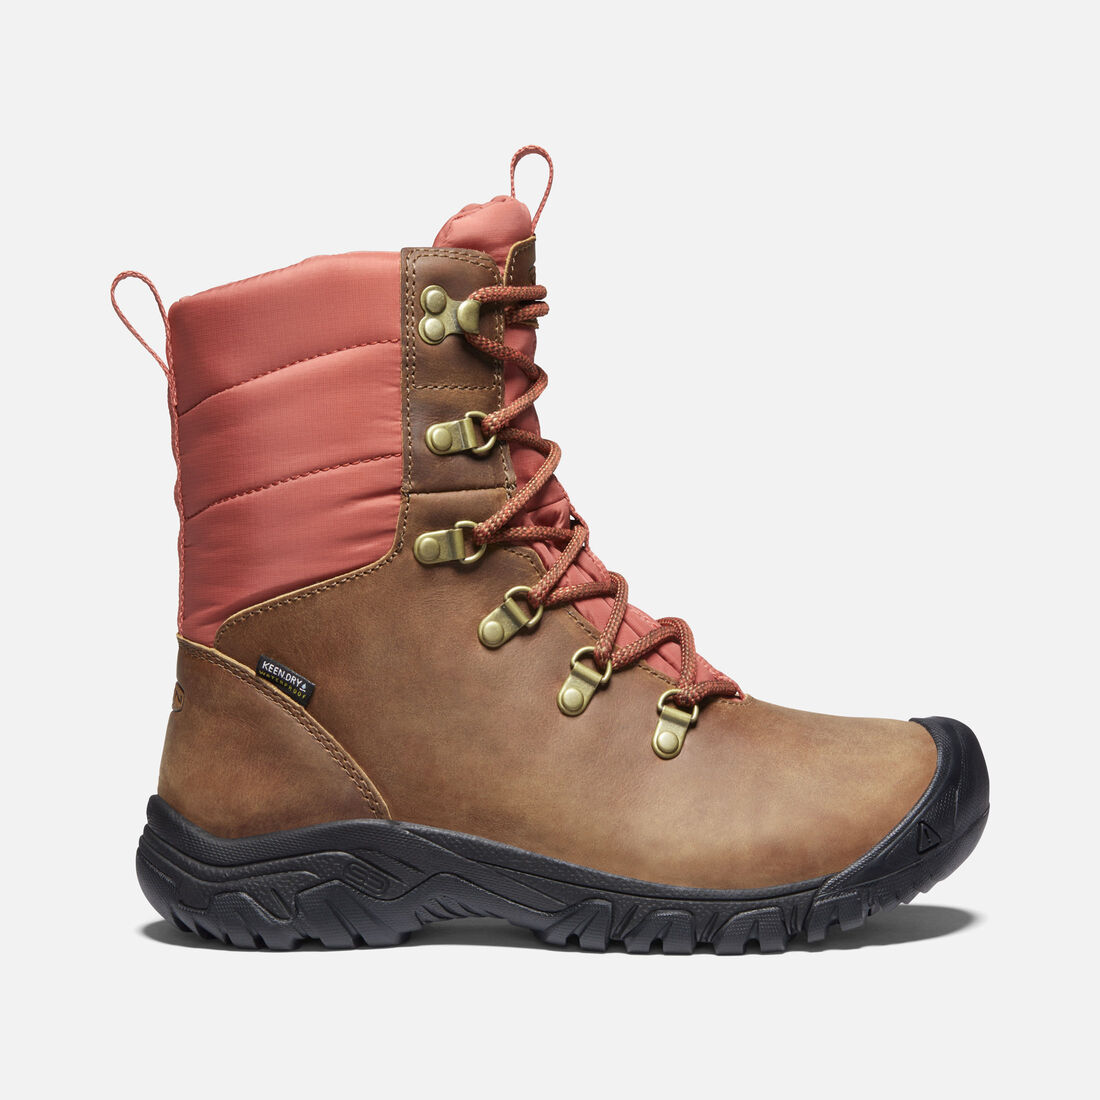 Women's Greta Waterproof Boot in Toasted Coconut/Redwood - large view.